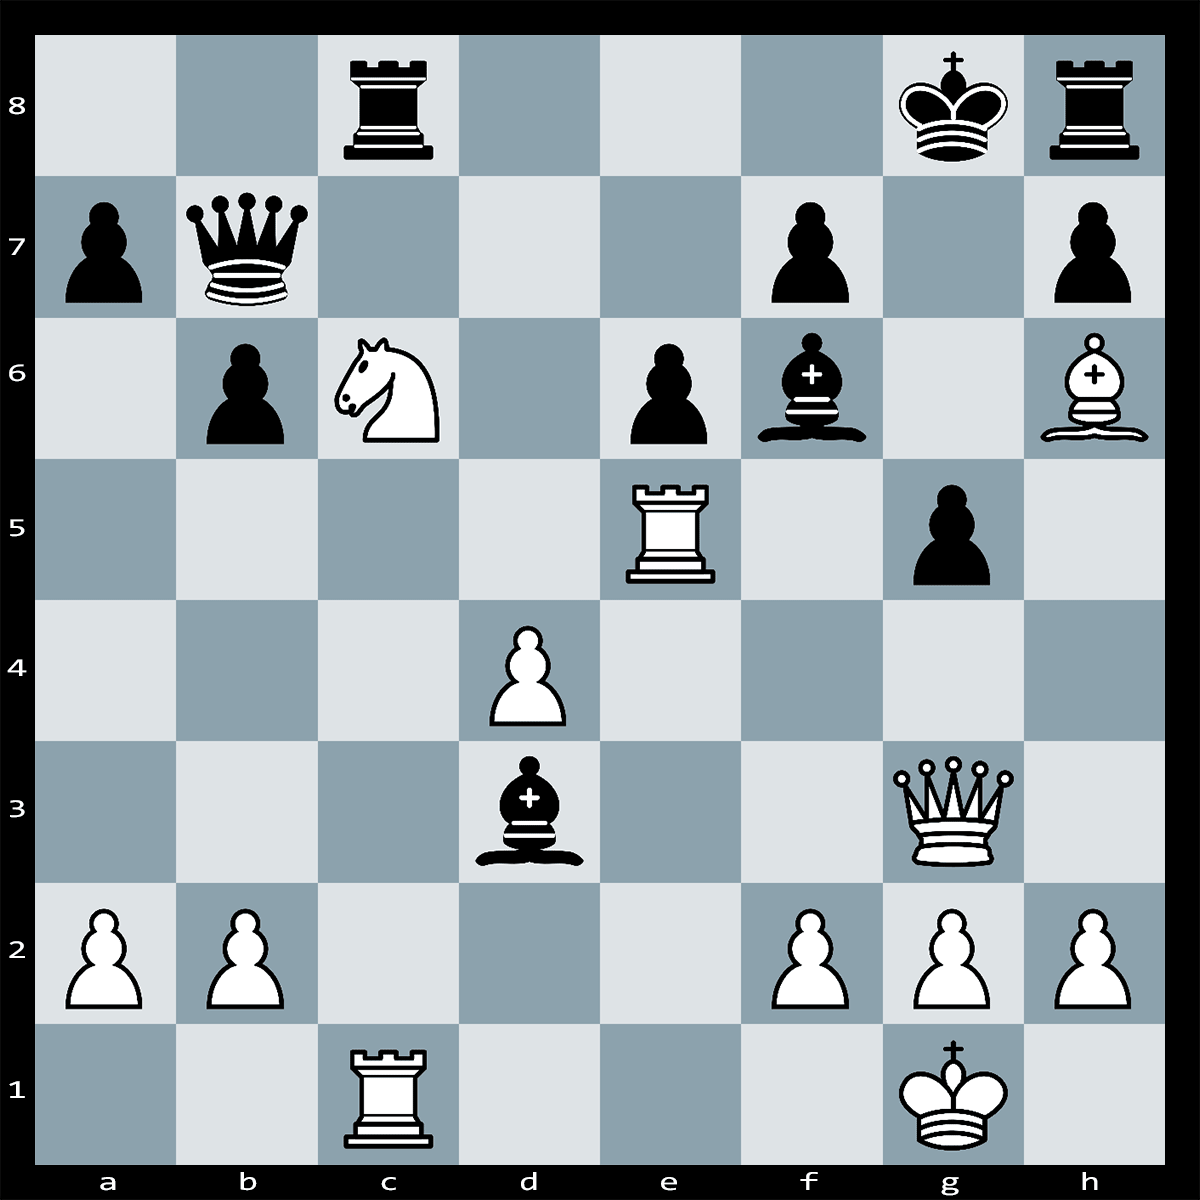 How White Can Force Checkmate in Five Moves?